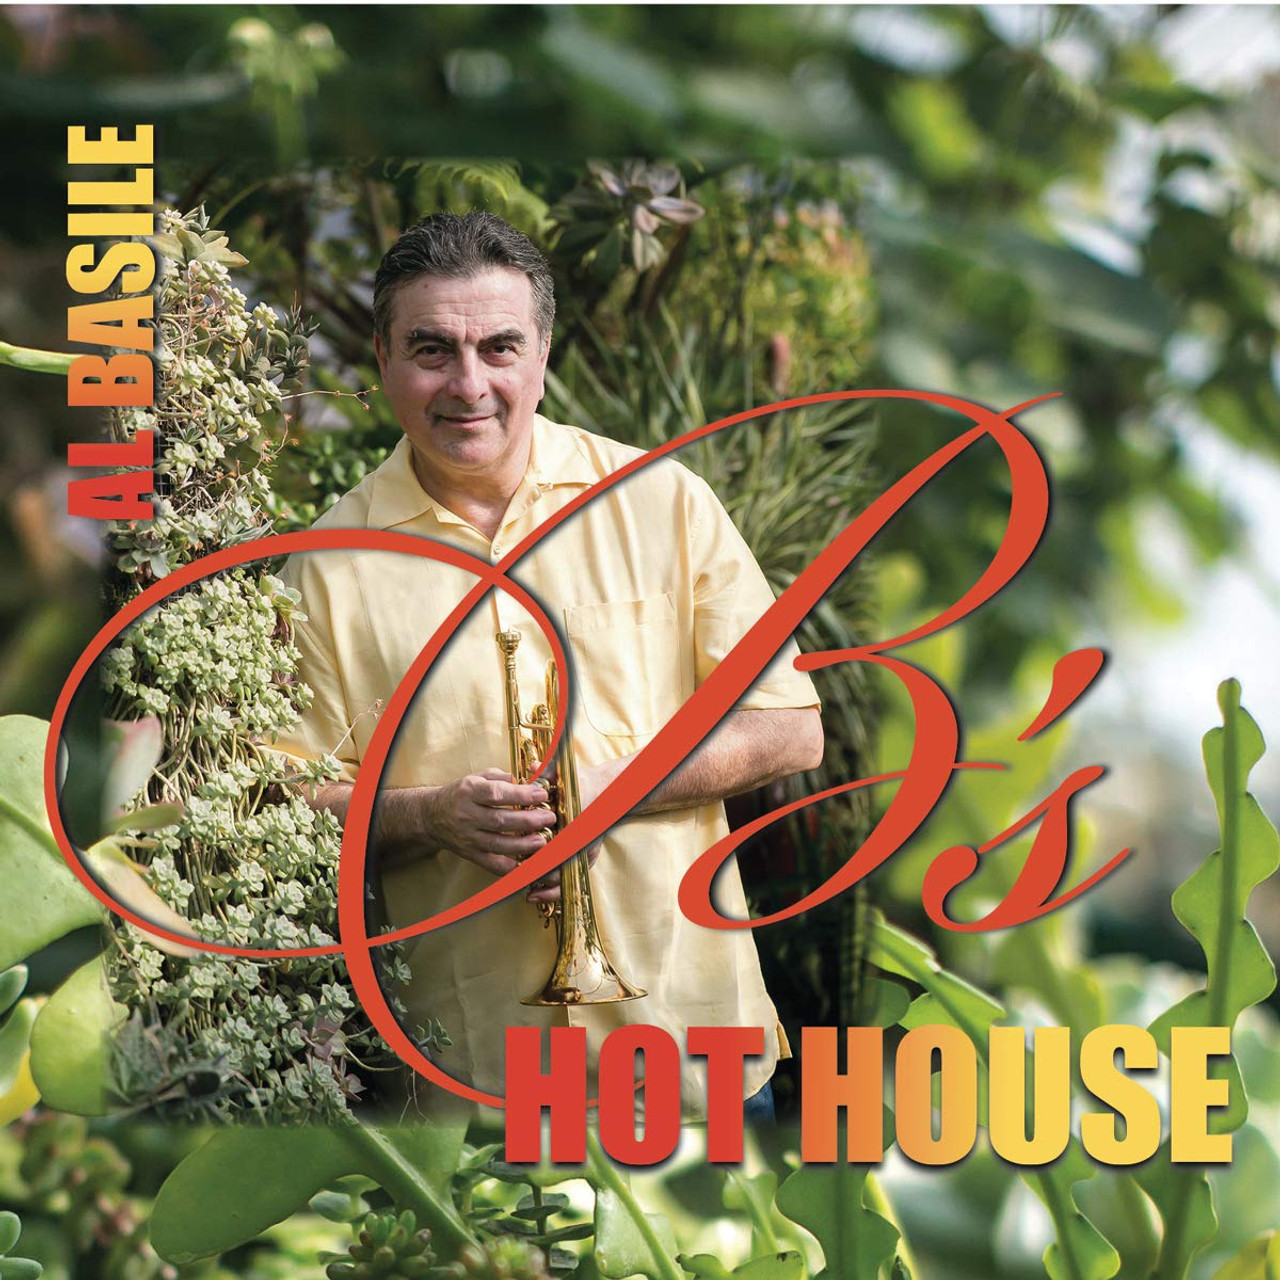 AL BASILE - B's Hothouse